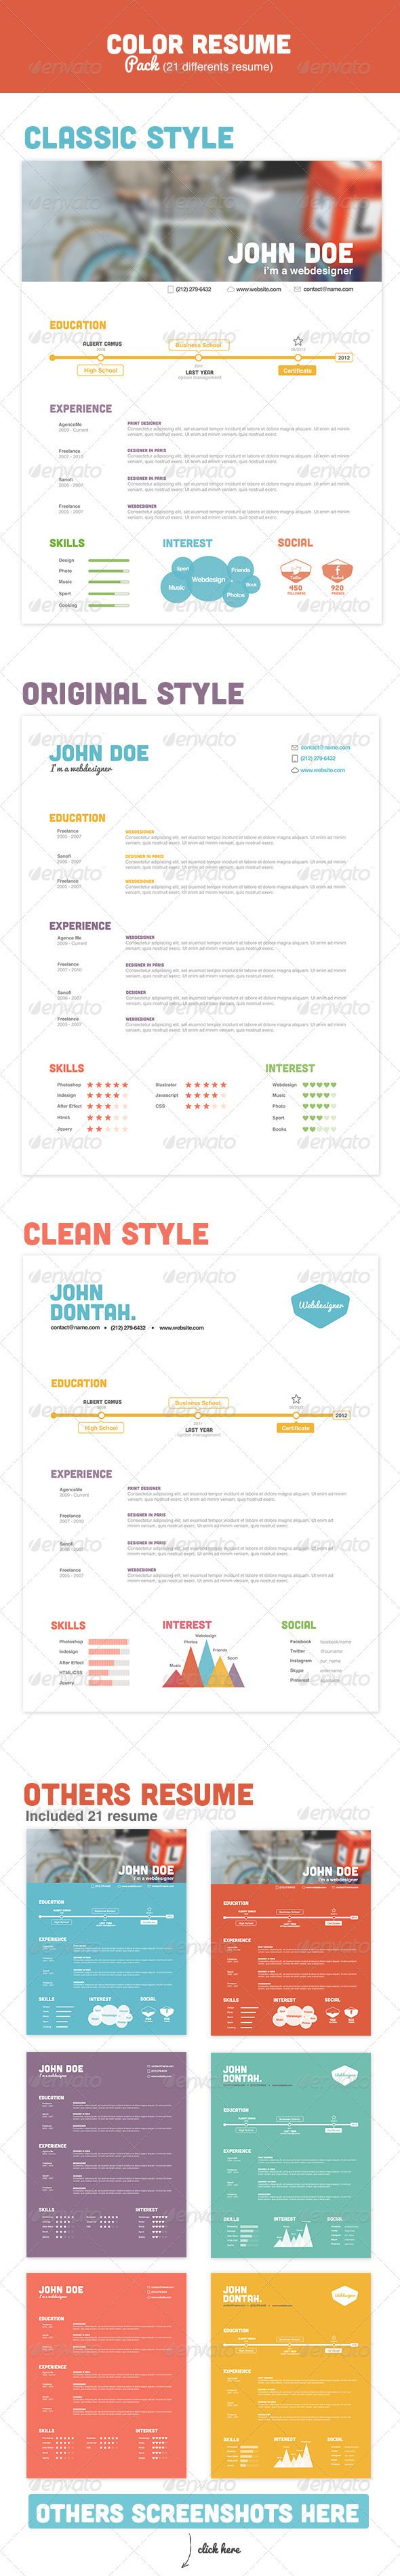 413 best images about cv on cool resumes cv